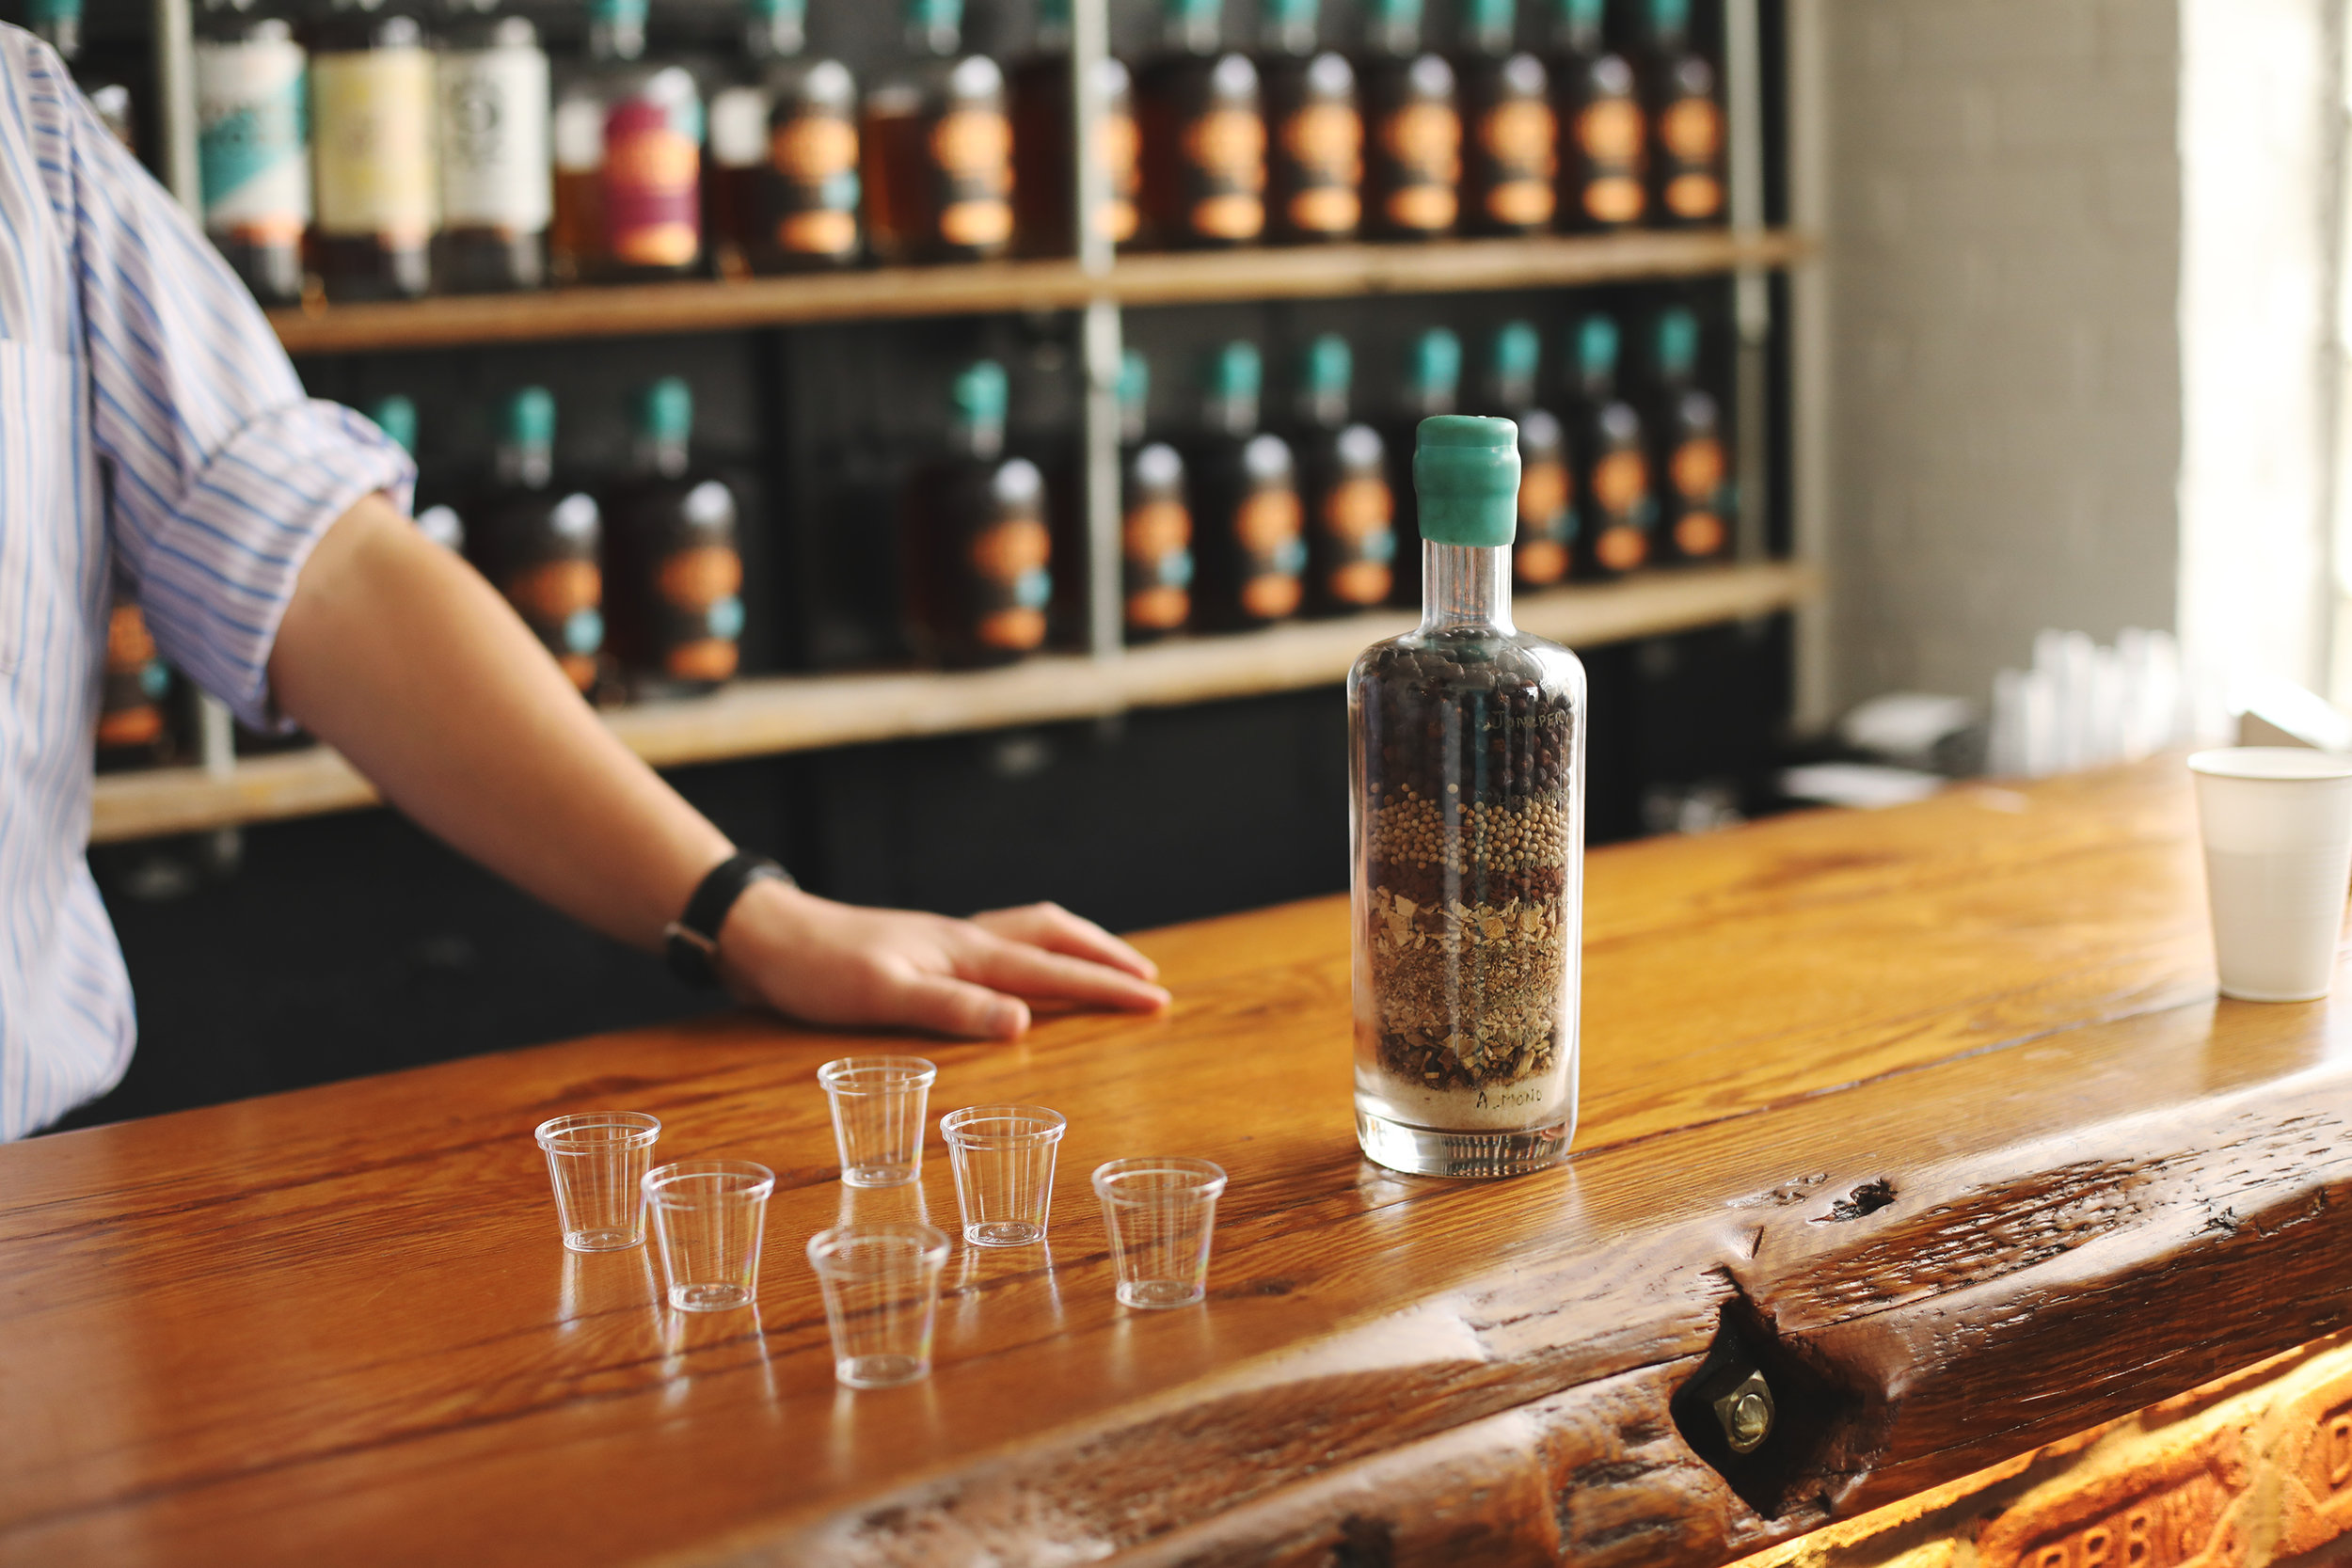 Denning's Point Distillery offers tastings of three (3) different spirits for $5. Try all six with two tastings and you won't be disappointed.